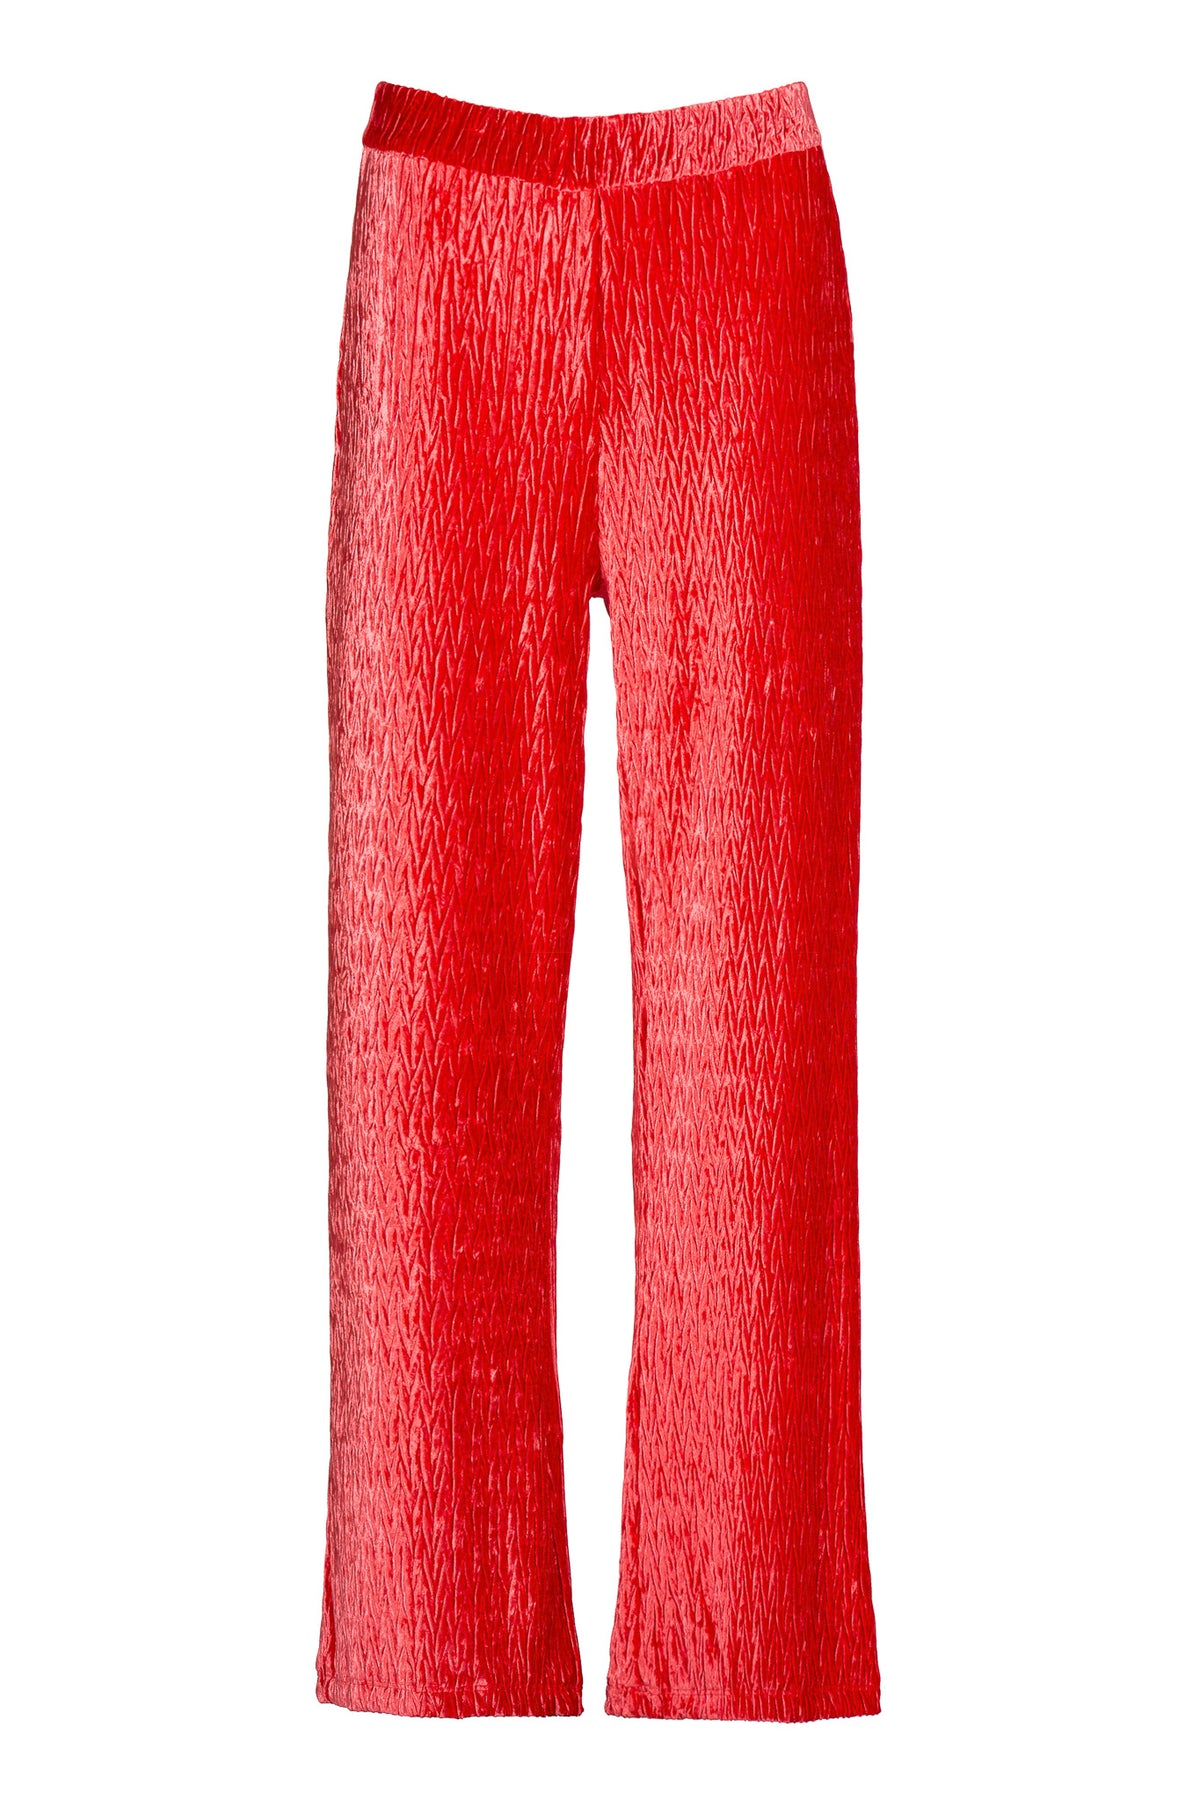 Plisse | Pants | Fire Red